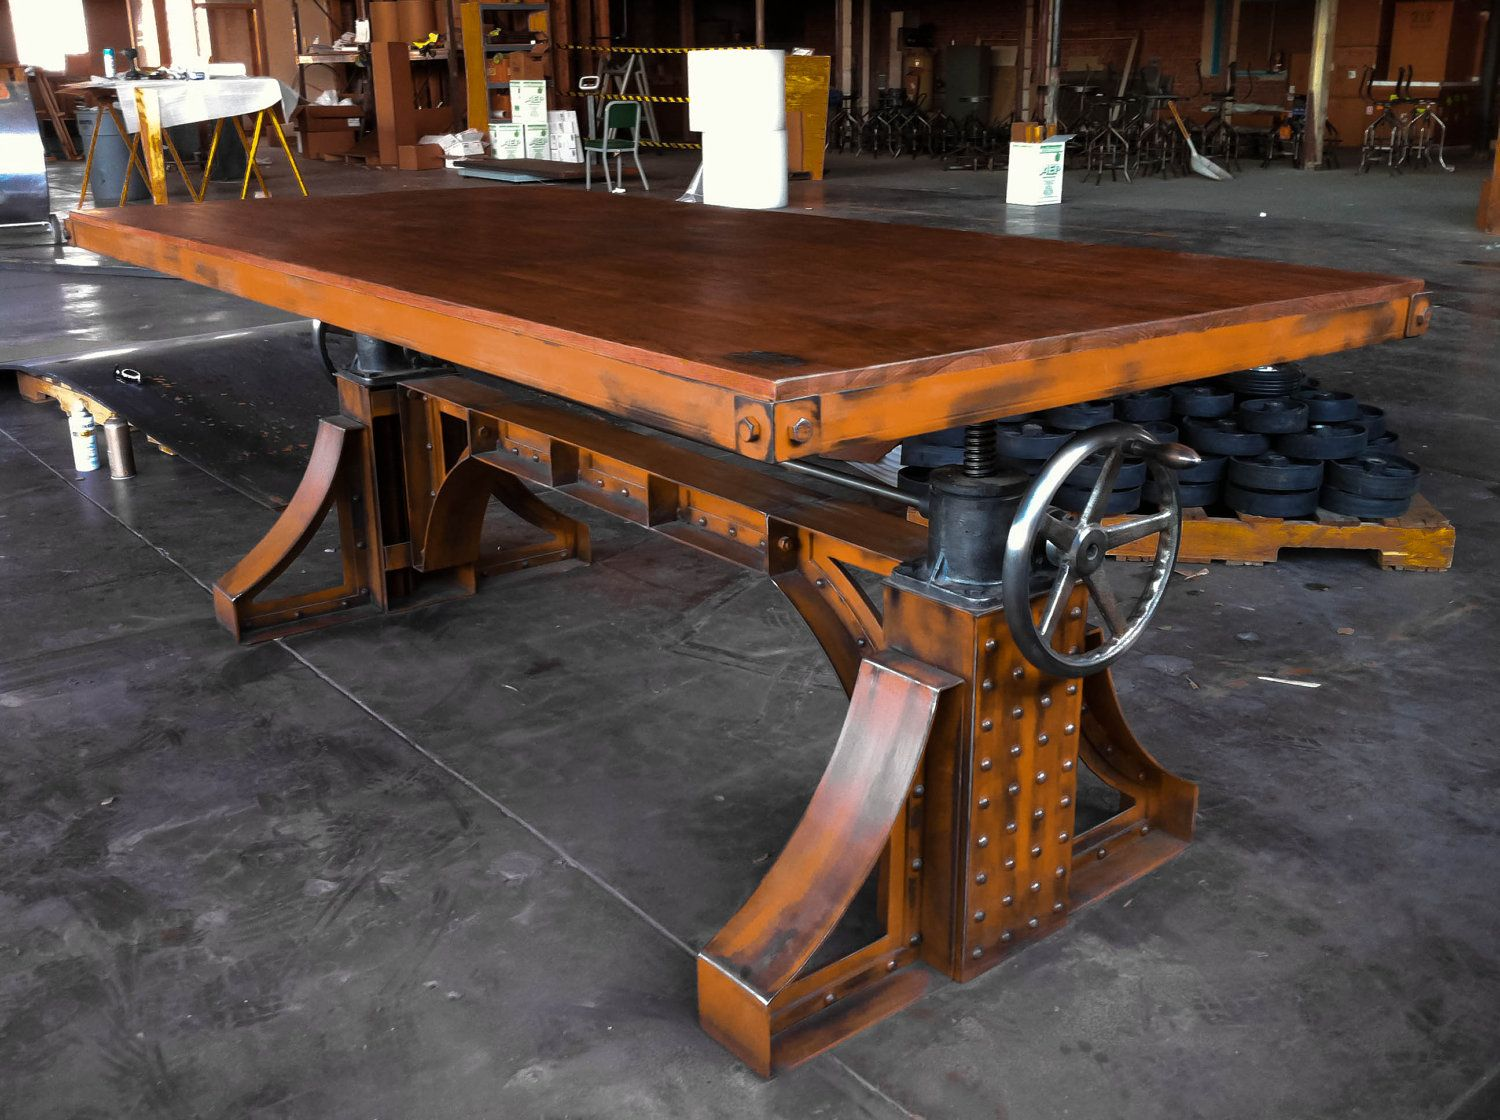 fabulous ly expensive  vintage industrial crank desk   bronx adjustable height table  14950 fabulous ly expensive  vintage industrial crank desk   bronx      rh   pinterest com